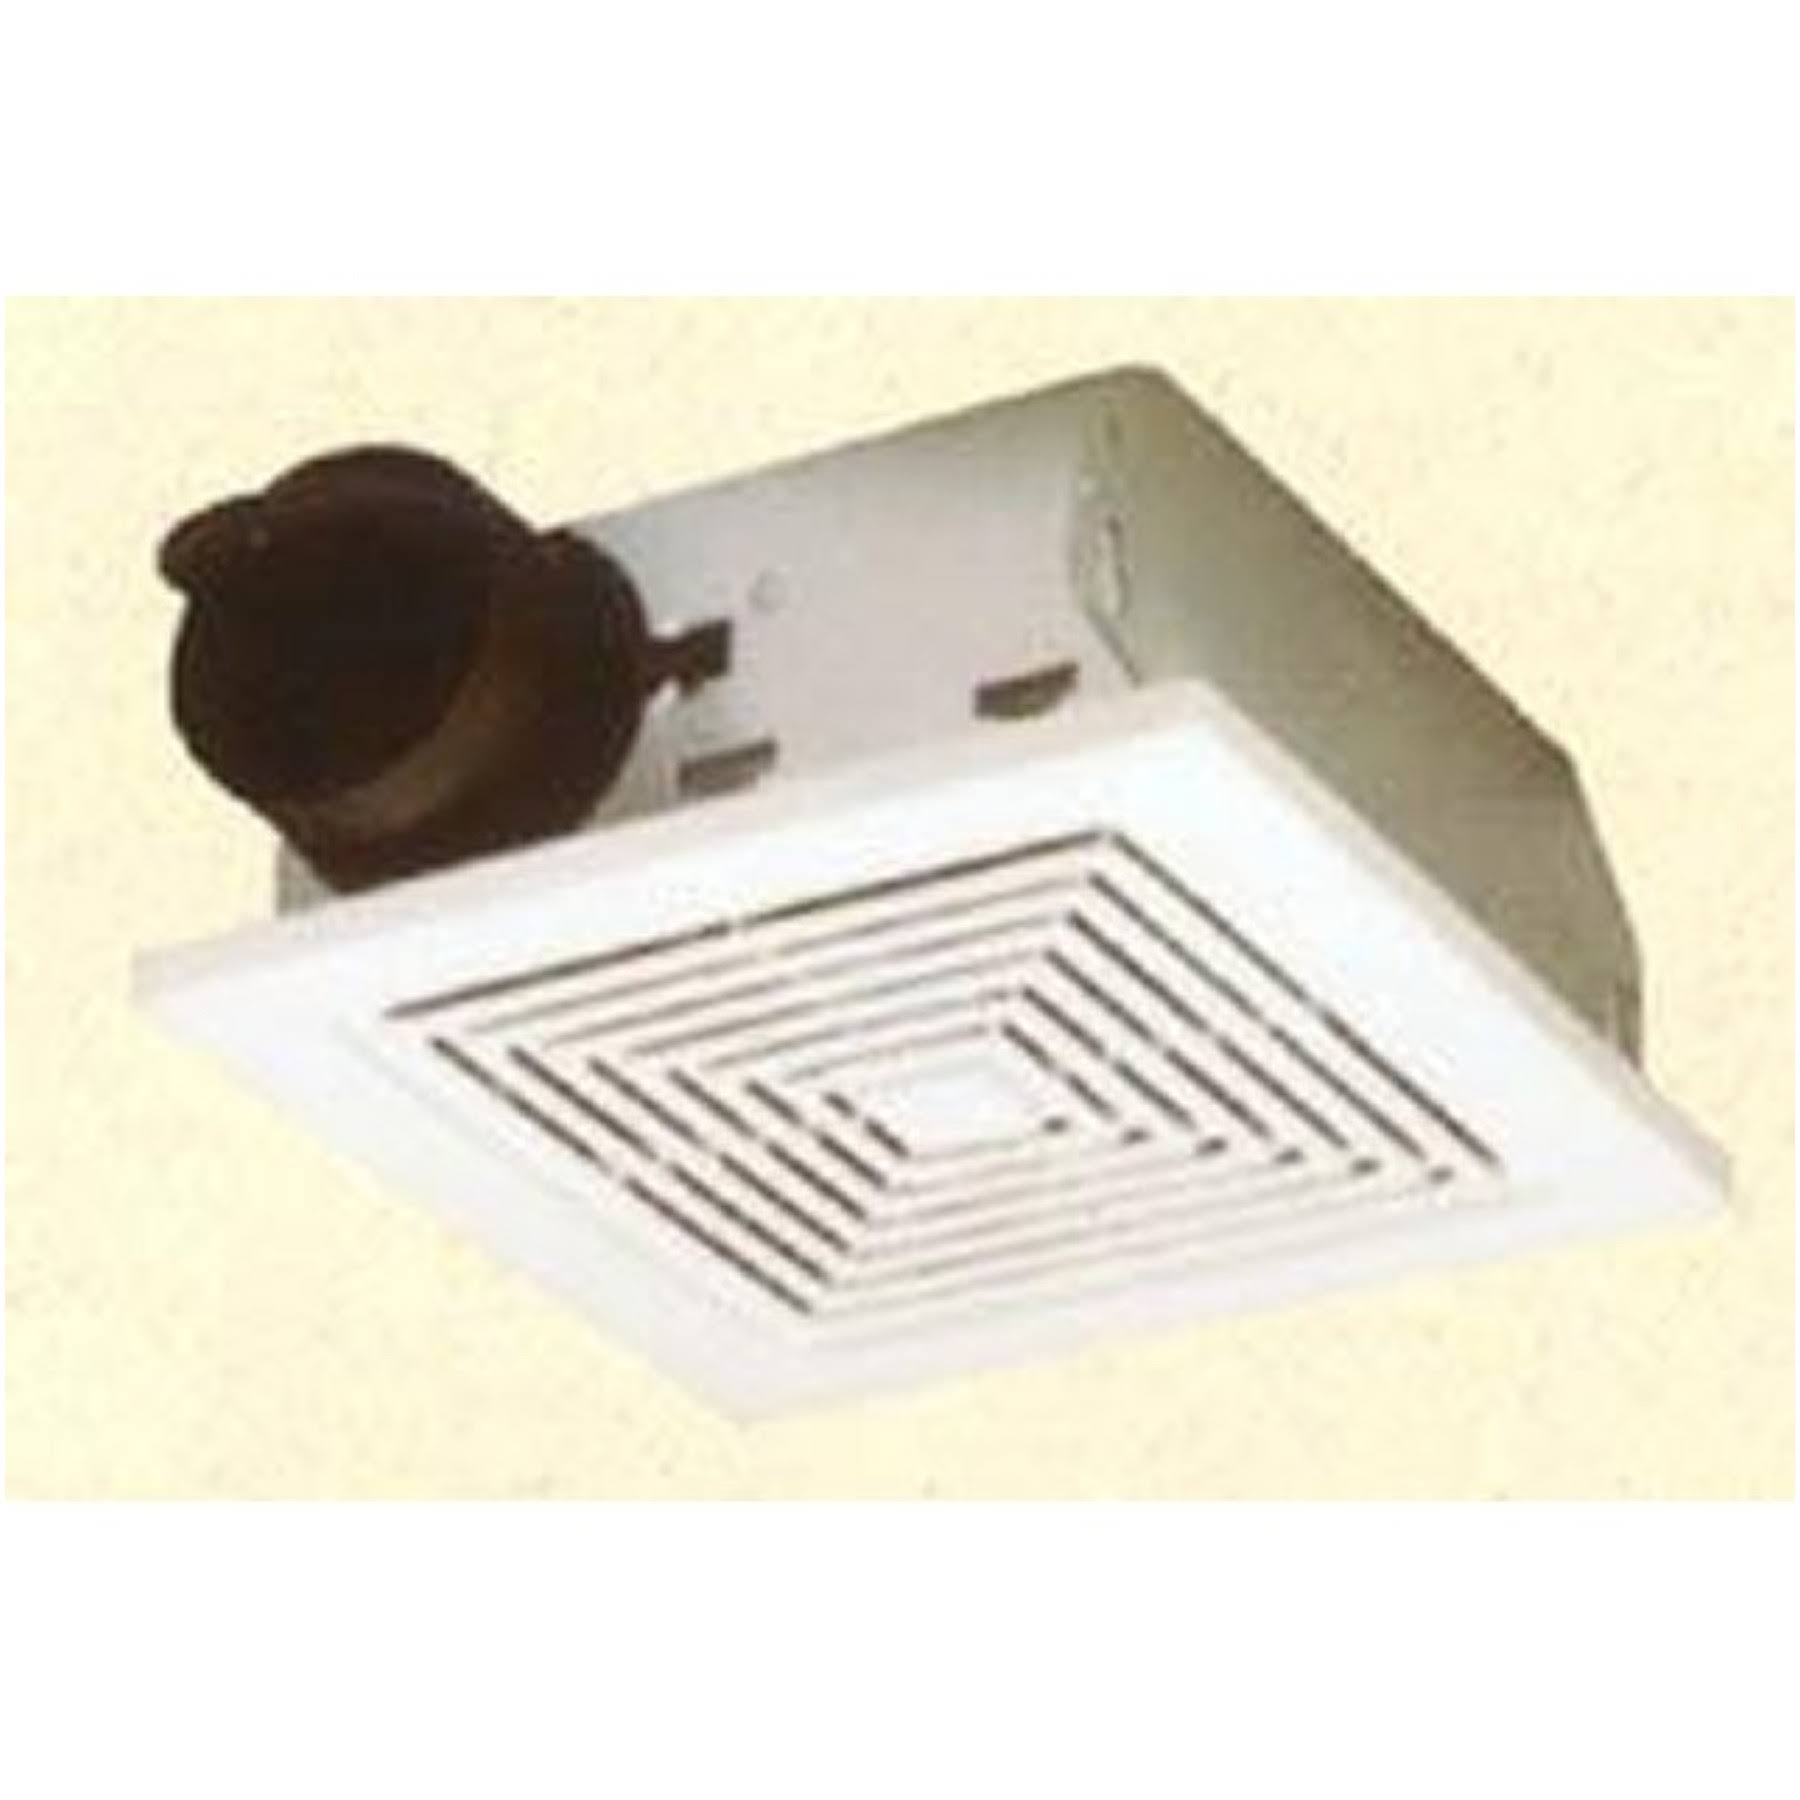 Broan 688 Ceiling and Wall Mount Fan - 50 CFM 4.0 Sones, White Plastic Grille